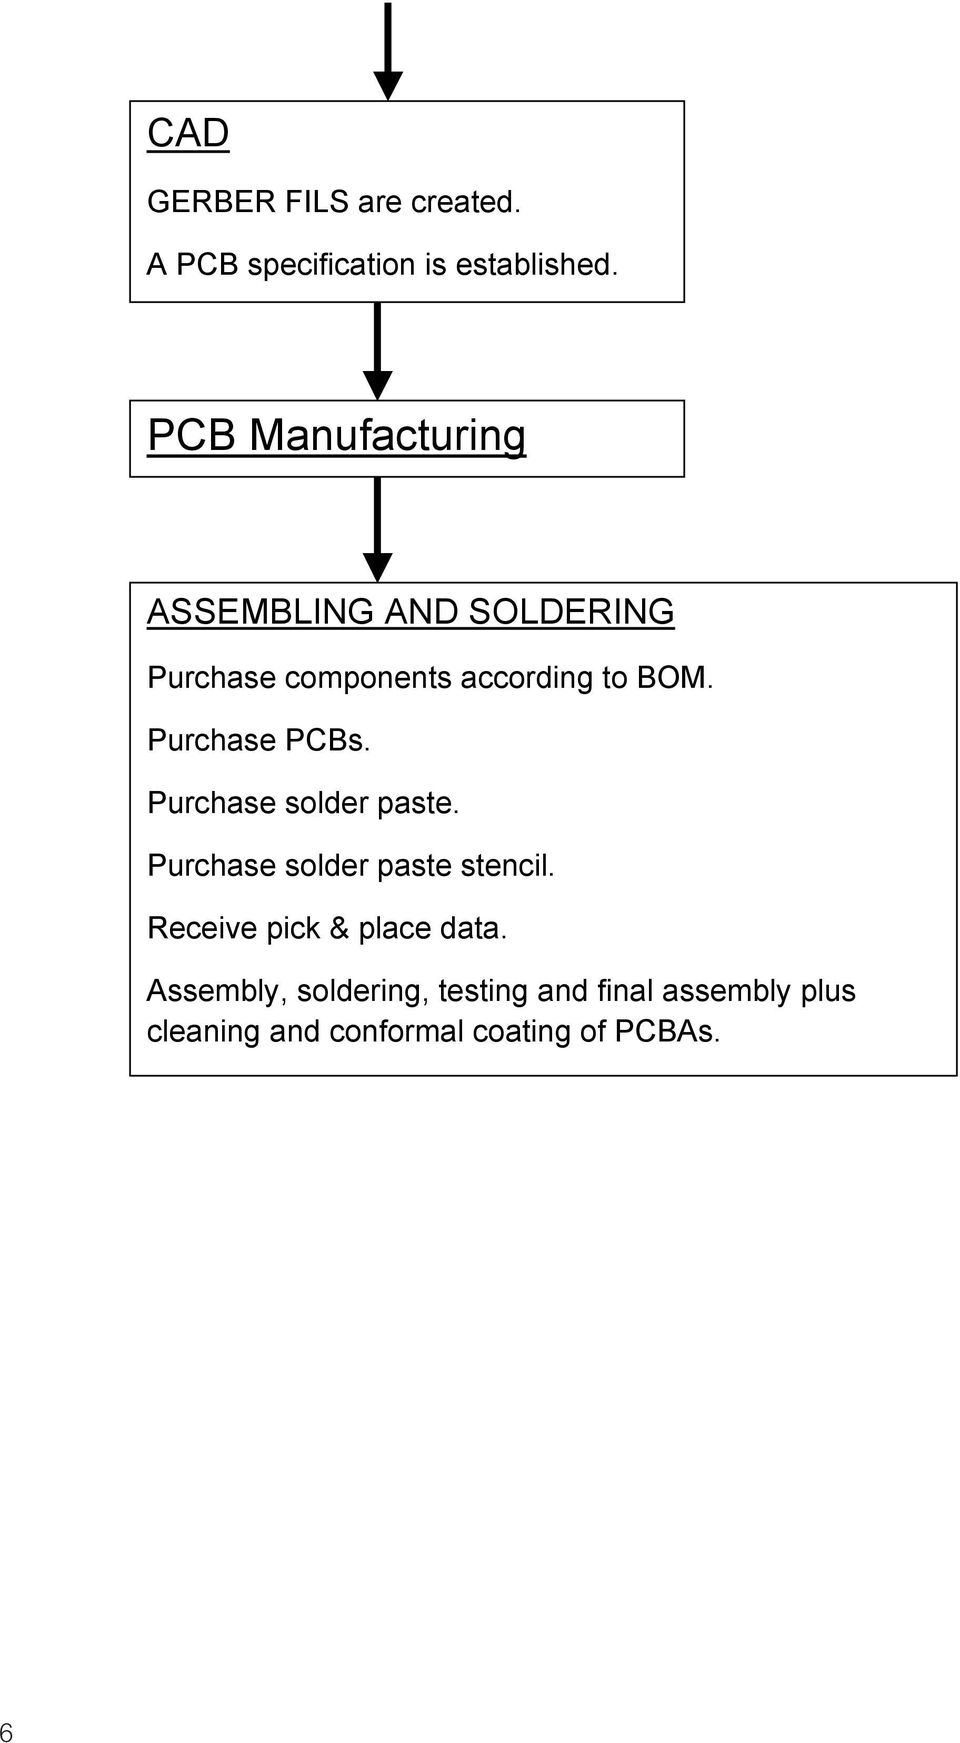 Ipc Checklist For Producing Rigid Pcbas Pdf Printed Circuit Board Assembly On Global Sources Purchase Pcbs Solder Paste Stencil